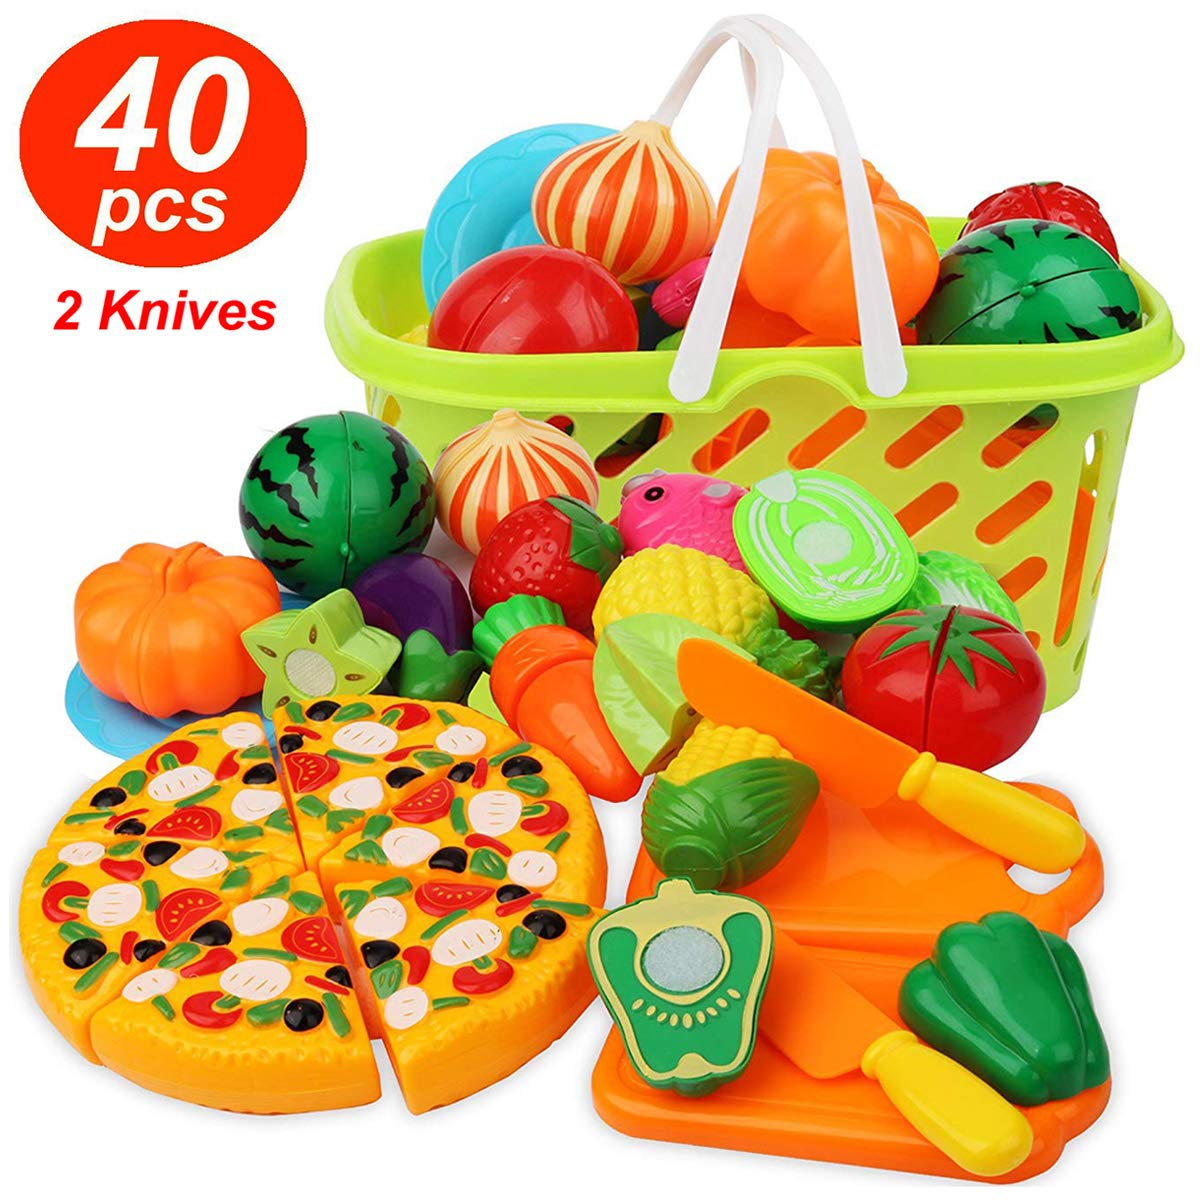 Cutting Play Food Kitchen Pretend - Grocery Basket Toys for Kids 40pcs Children Girls Boys Educational Early Age Basic Skills Development, Include Fruits Vegetables Pizza Knife Mini Dishes by Feroxo